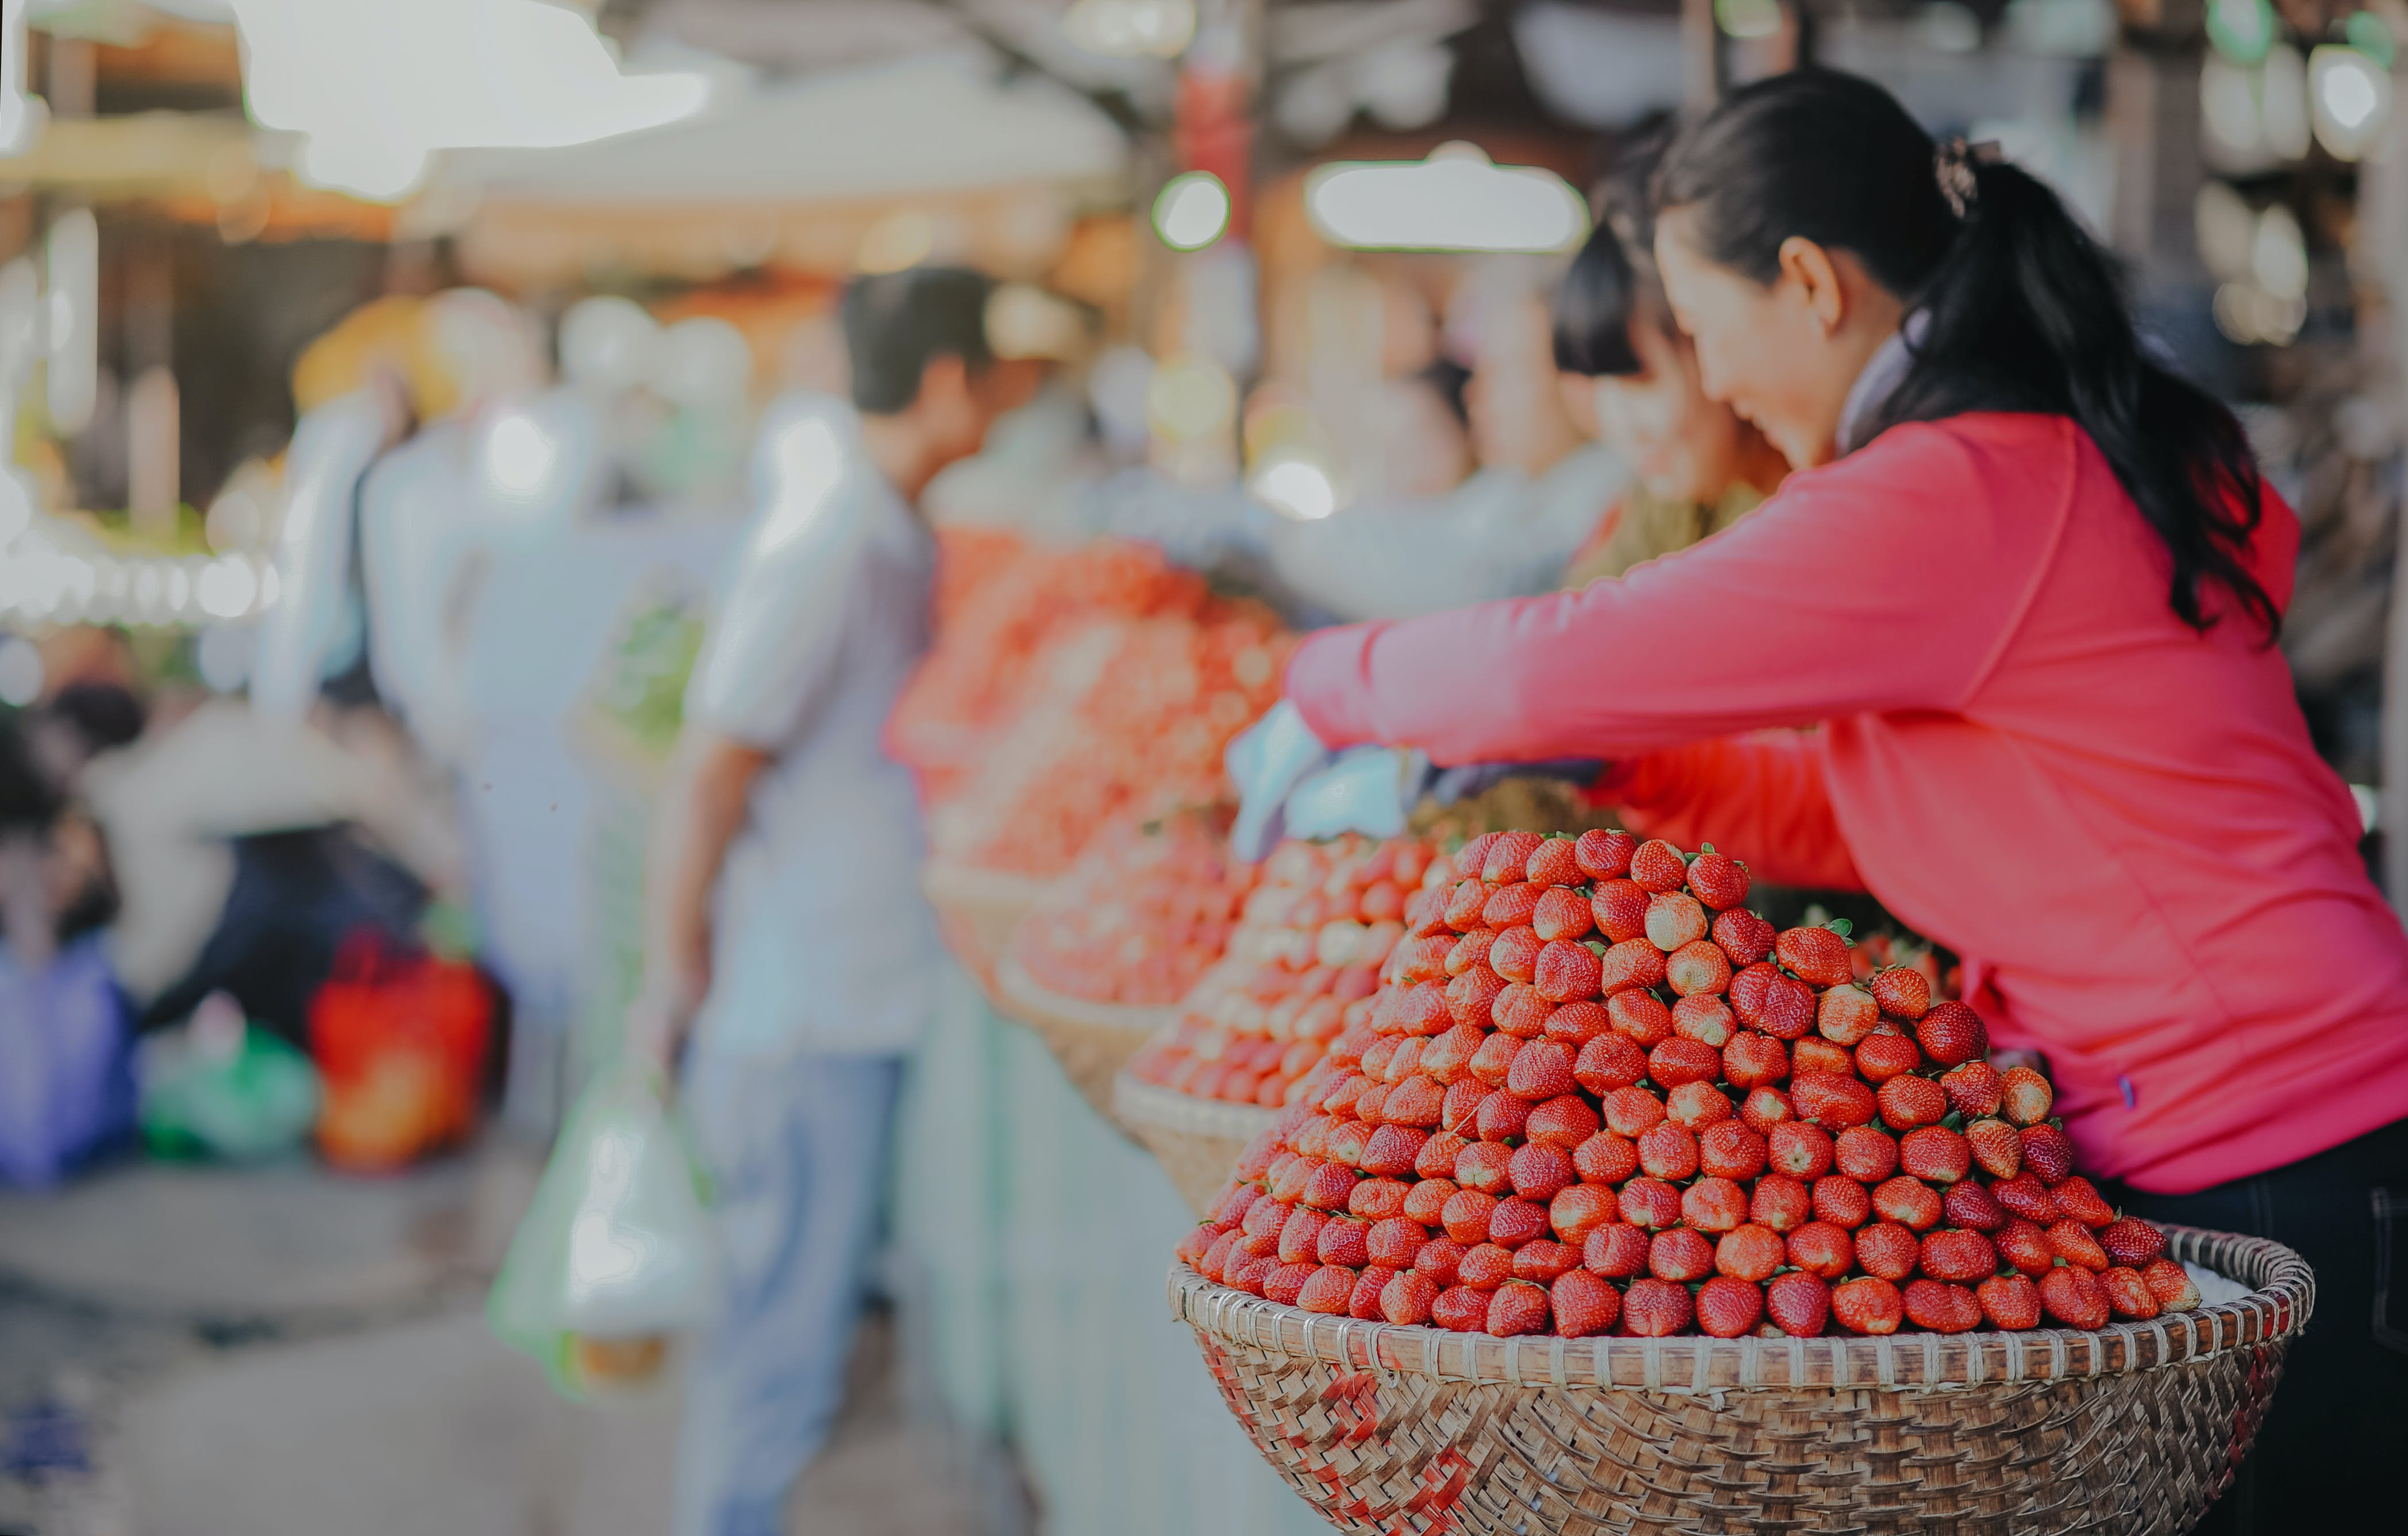 Selective Focus Photography Of Woman Wearing Red Hoodie Standing Behind Of Basket Full Of Fruits